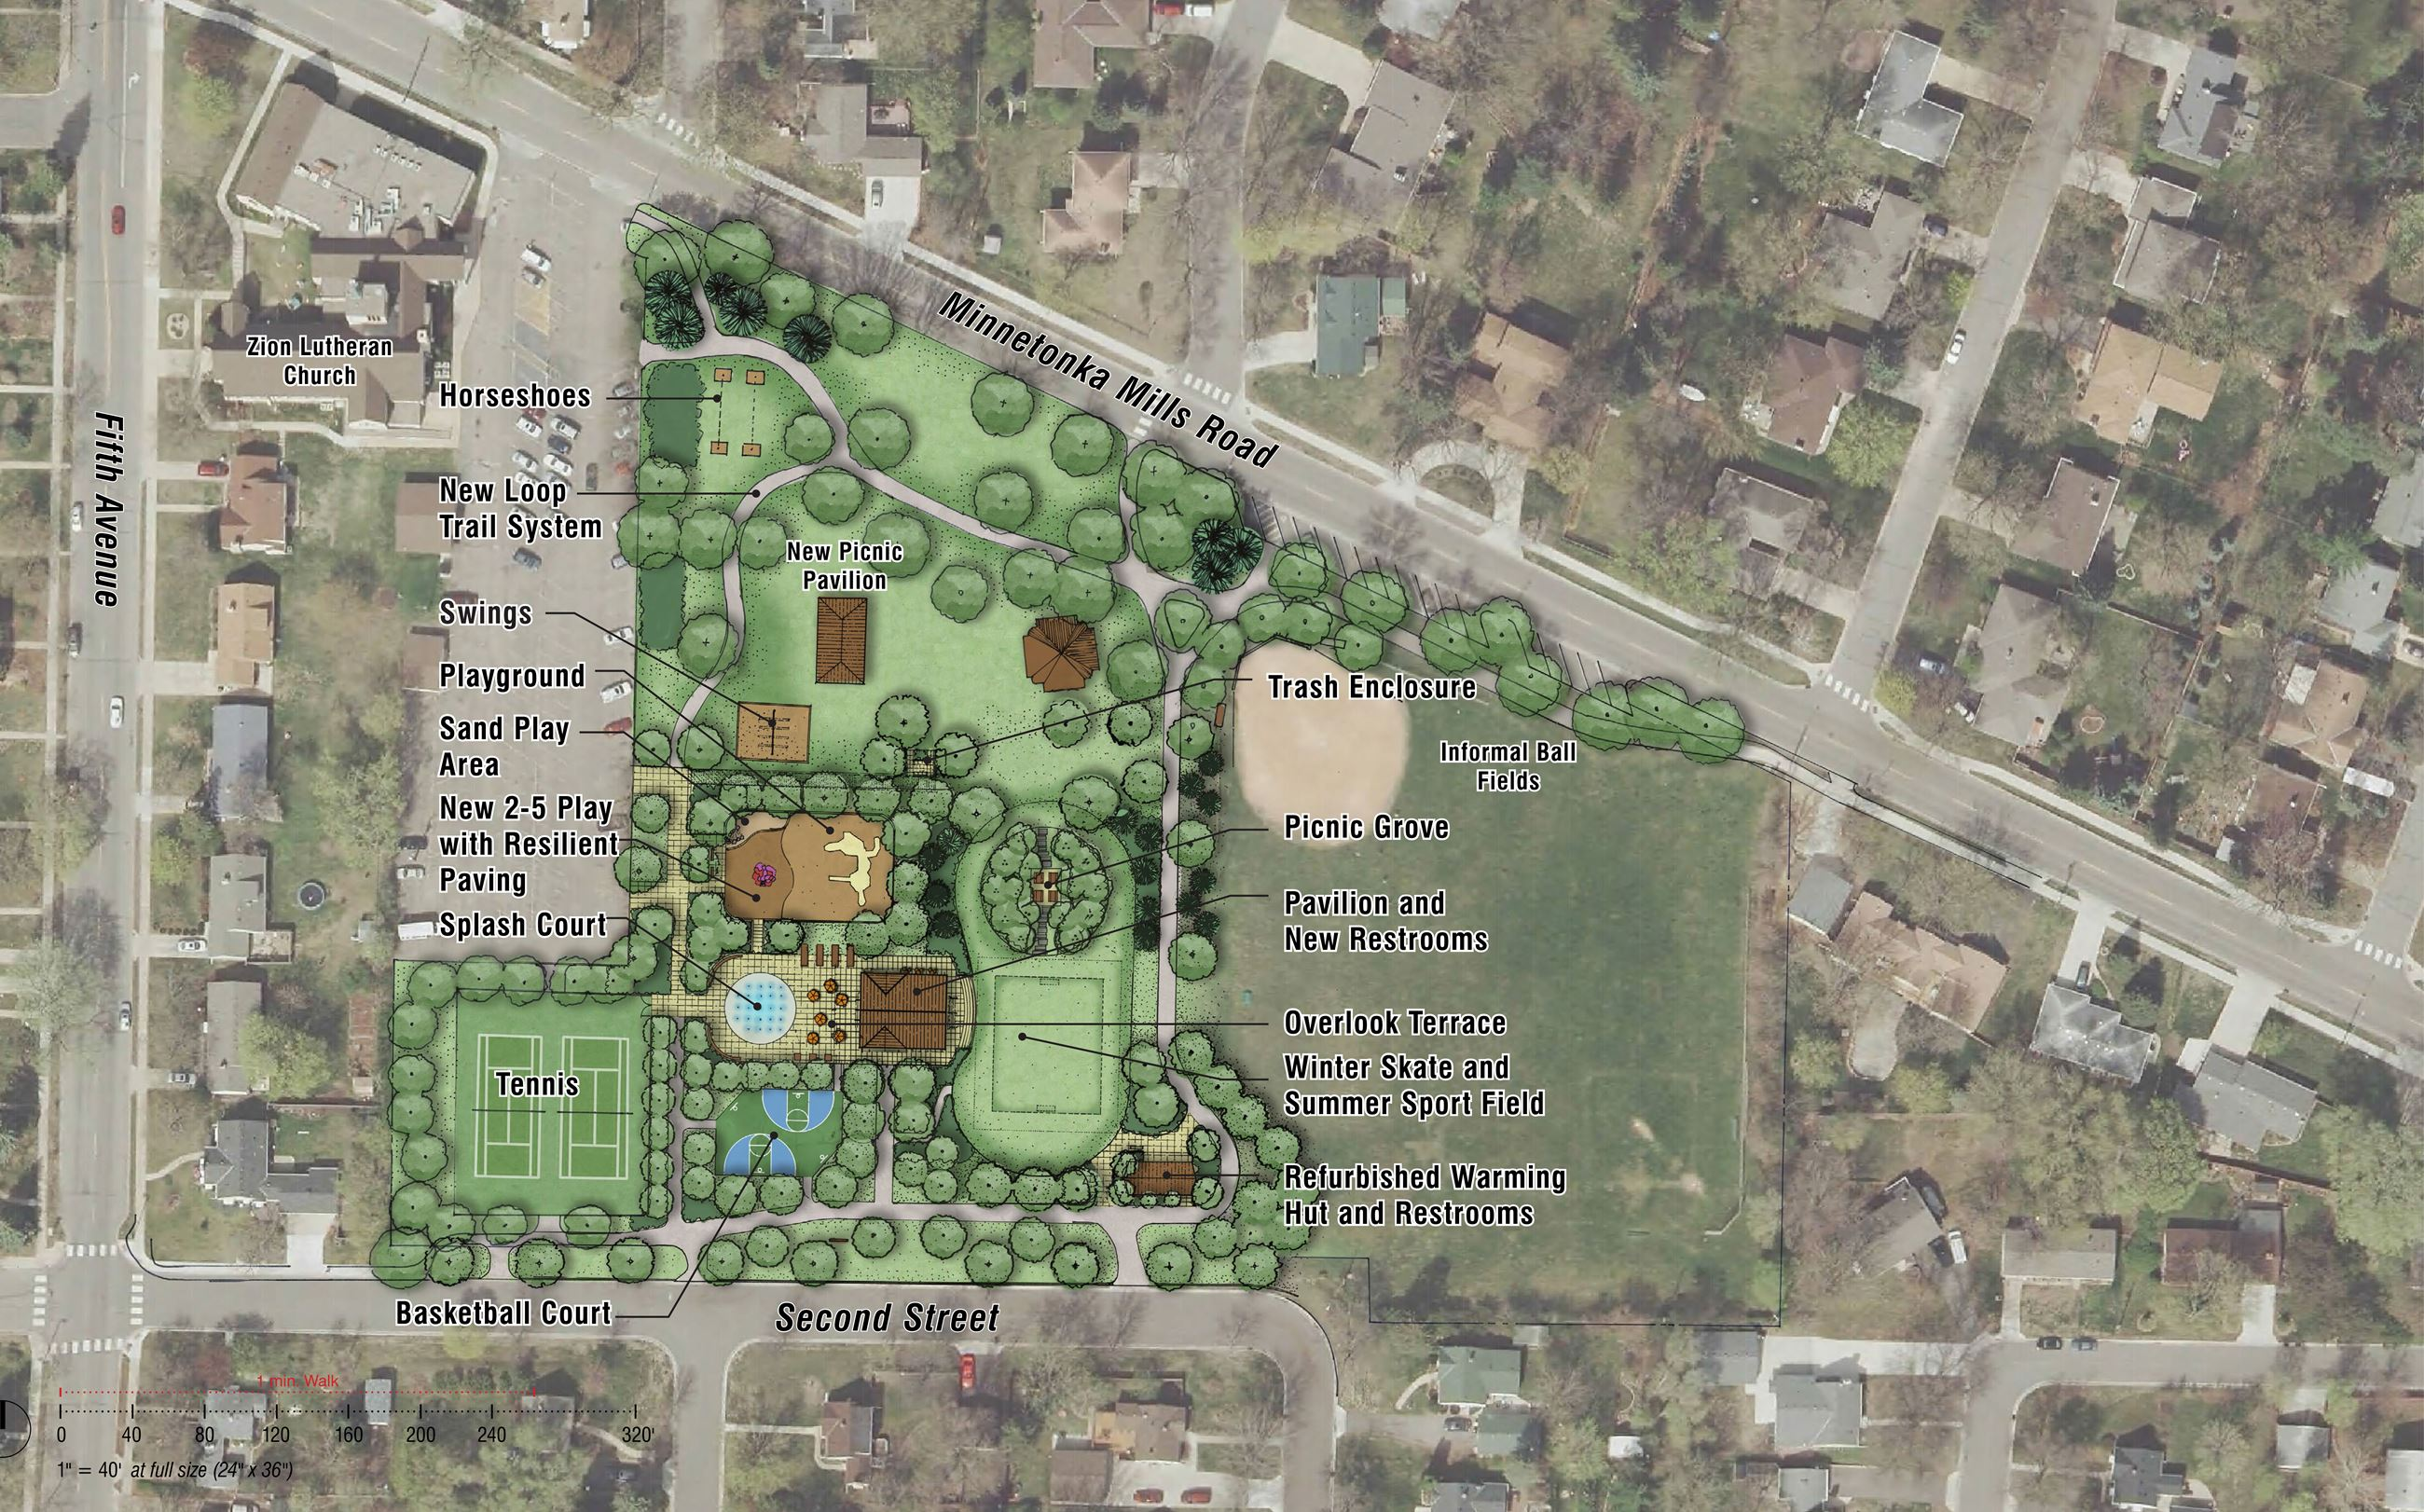 Burnes Park Improvements (2017) Aerial View